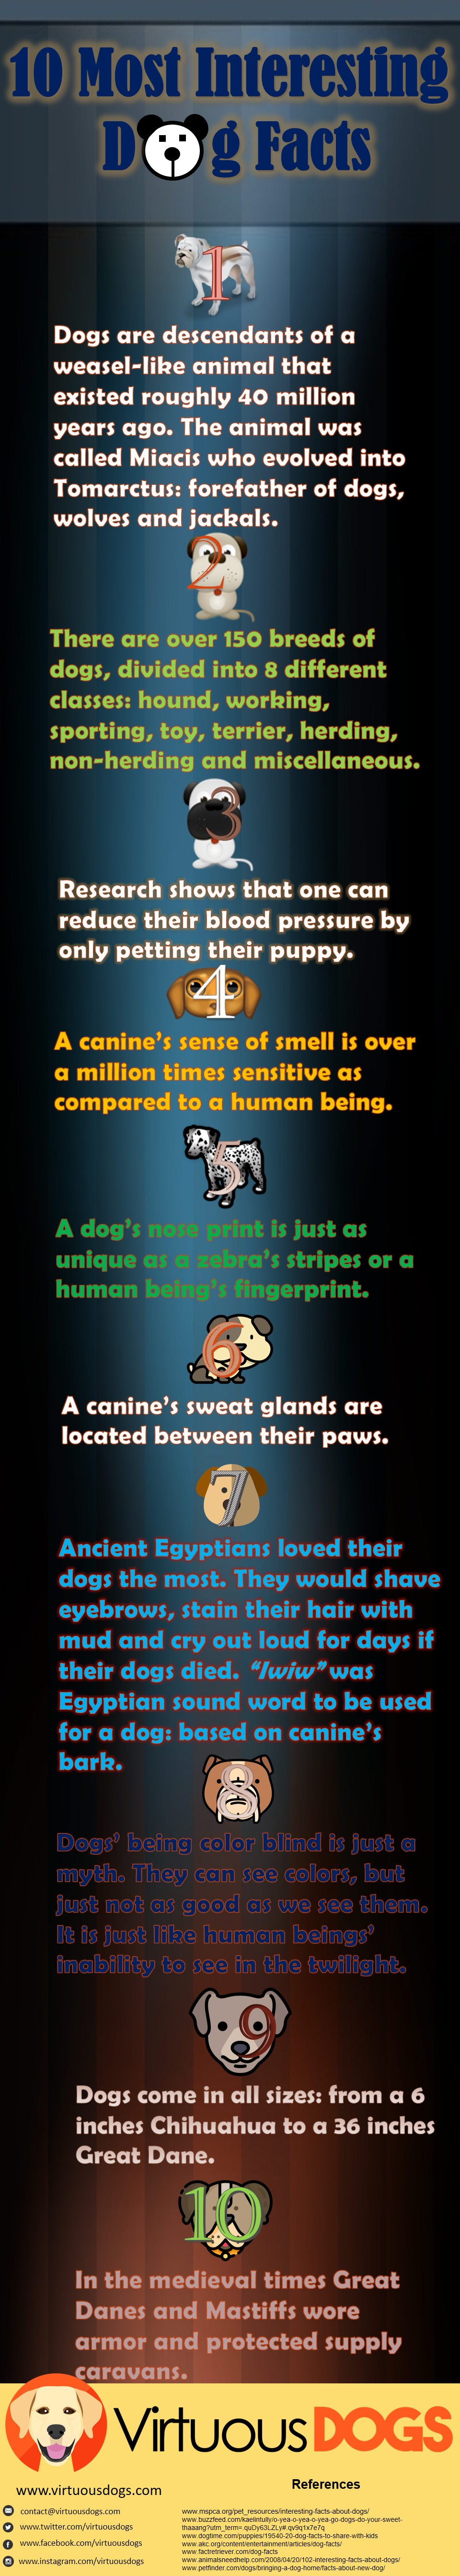 Dog-Facts-virtuous-dogs-infographics